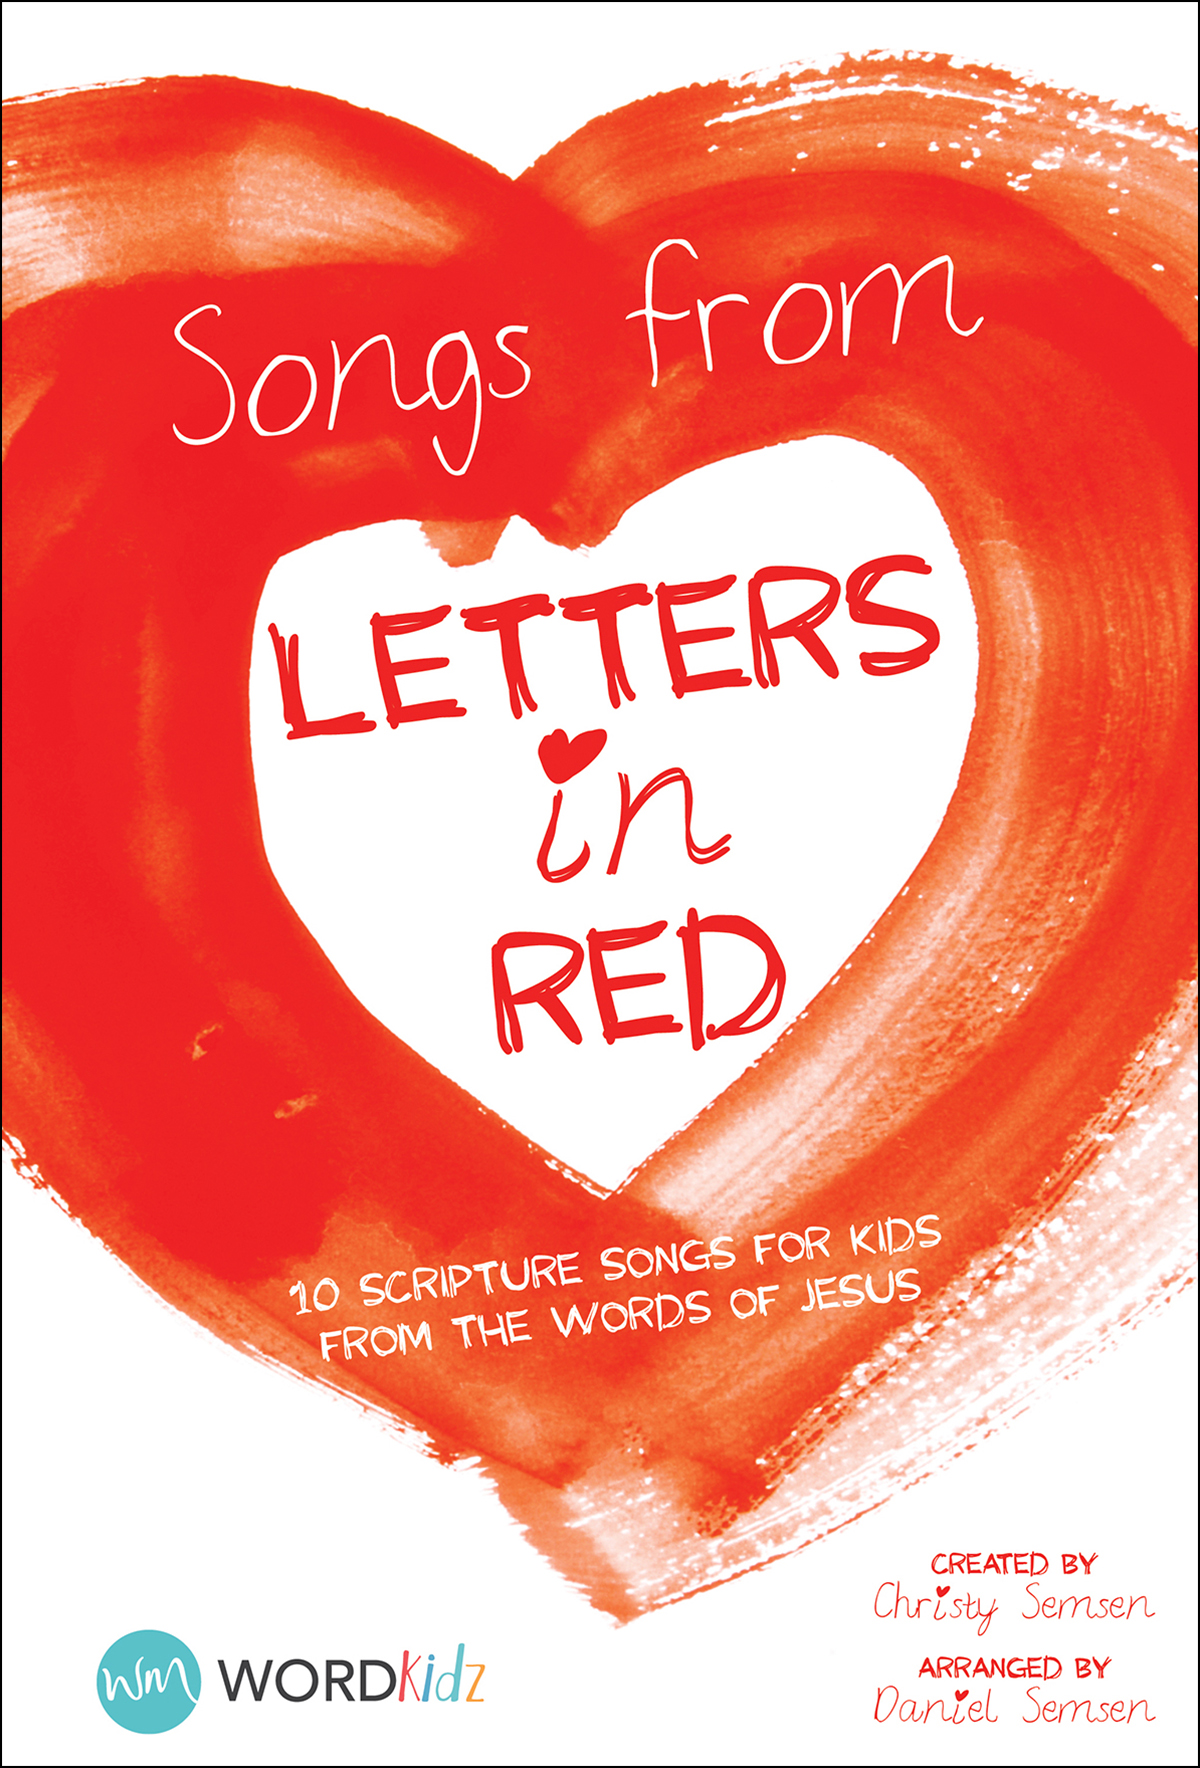 Songs from Letters in Red